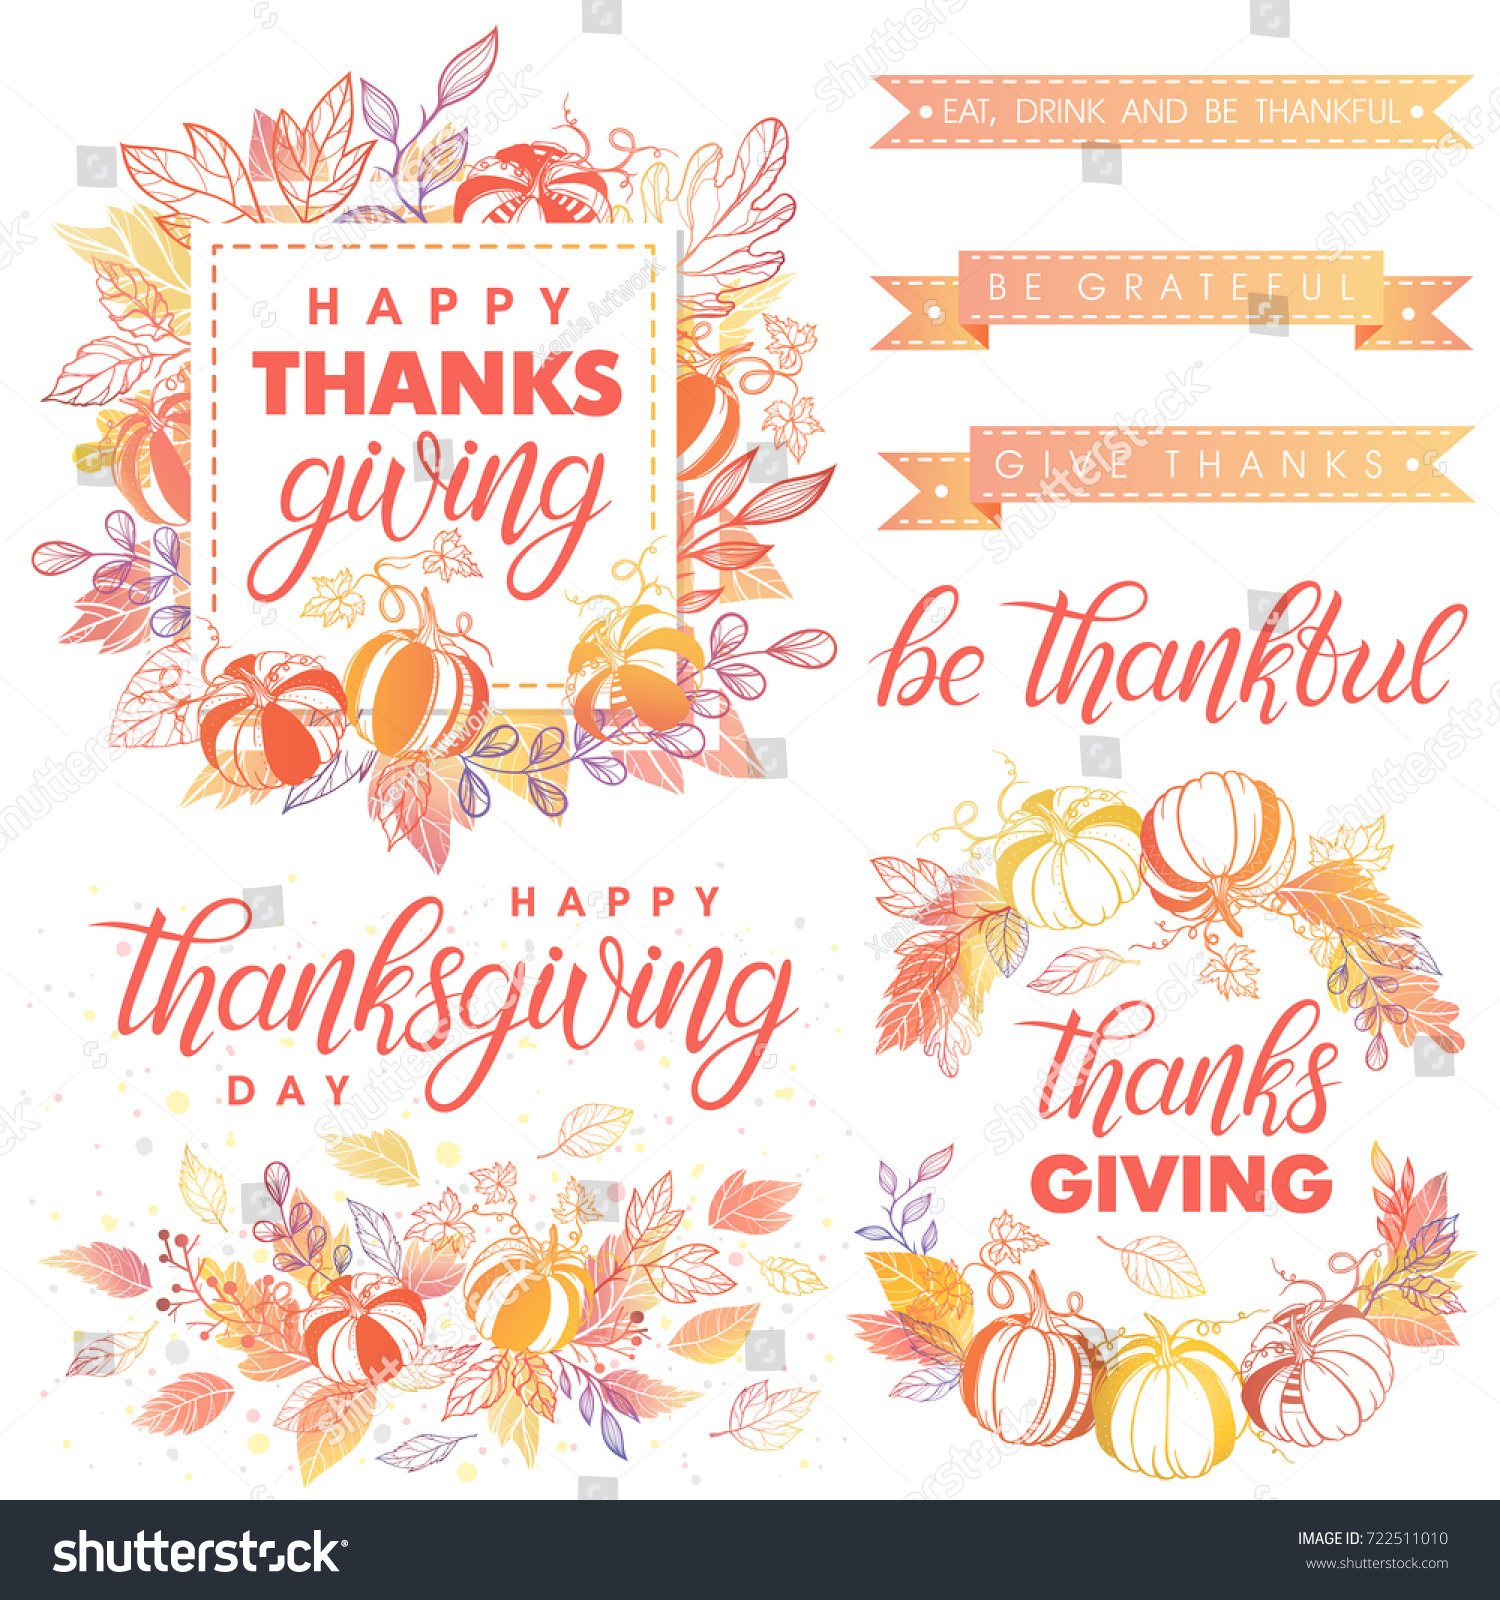 Thanksgiving Day Typography Collection Thanksgiving Day Greetings